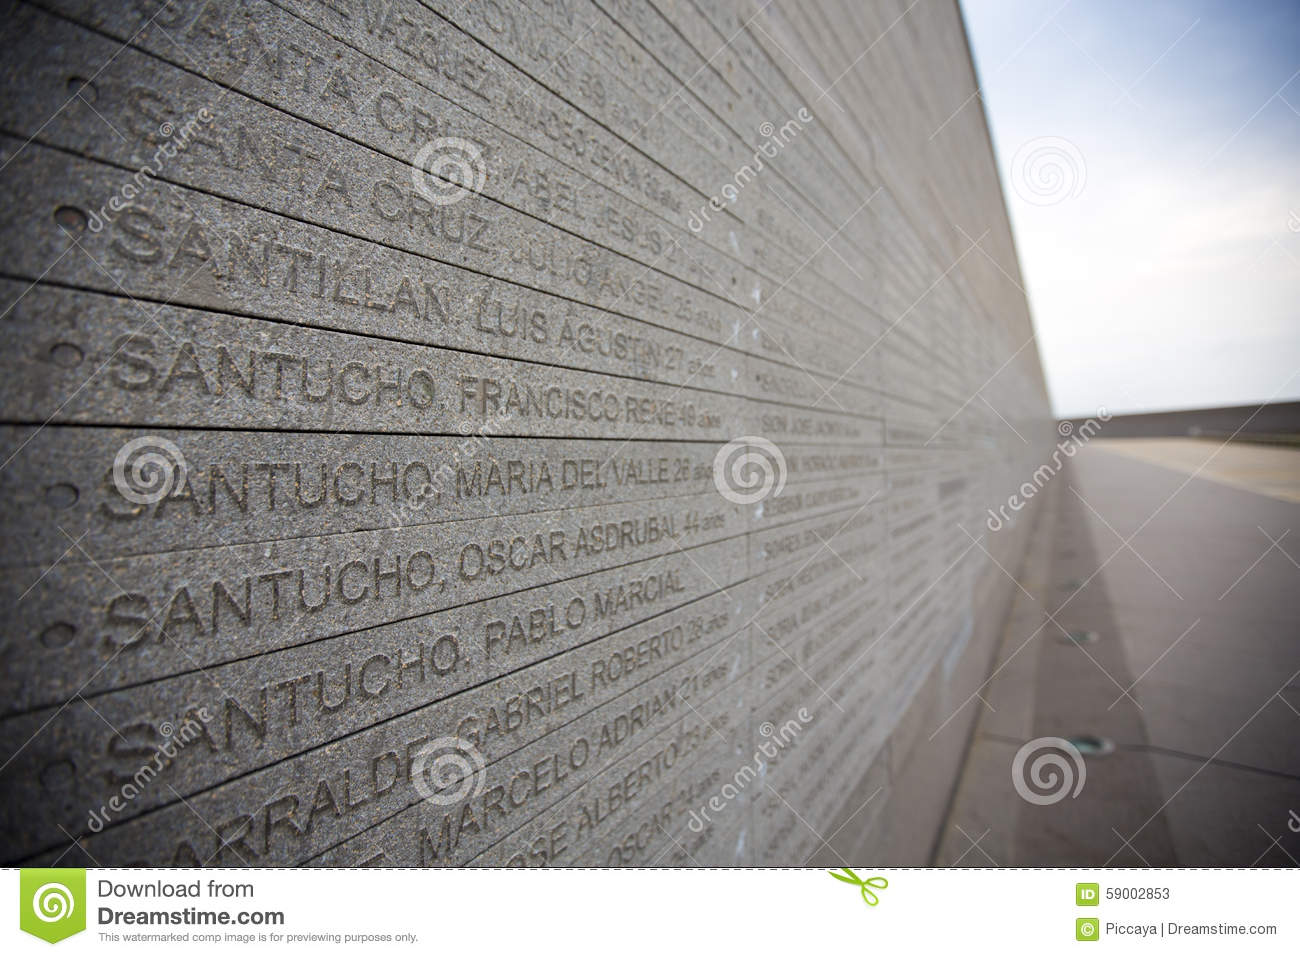 Memorial Park wall, with names of dictatorship's victims